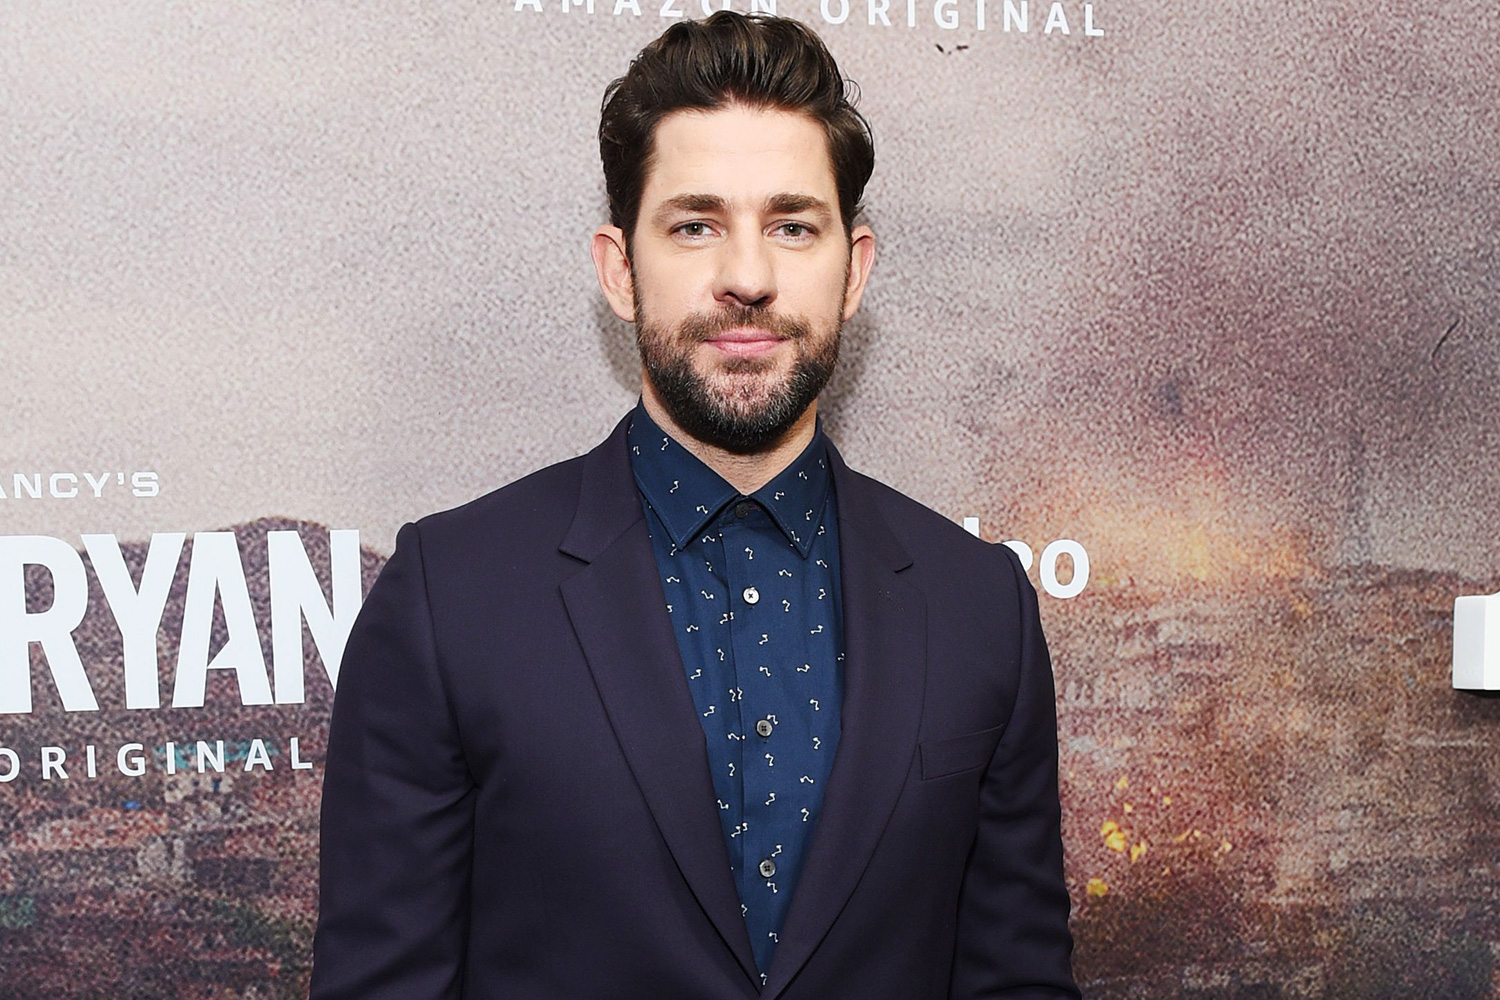 John Krasinski Tom Clancy's 'Jack Ryan' season two TV show premiere, Arrivals, New York, USA - 29 Oct 2019